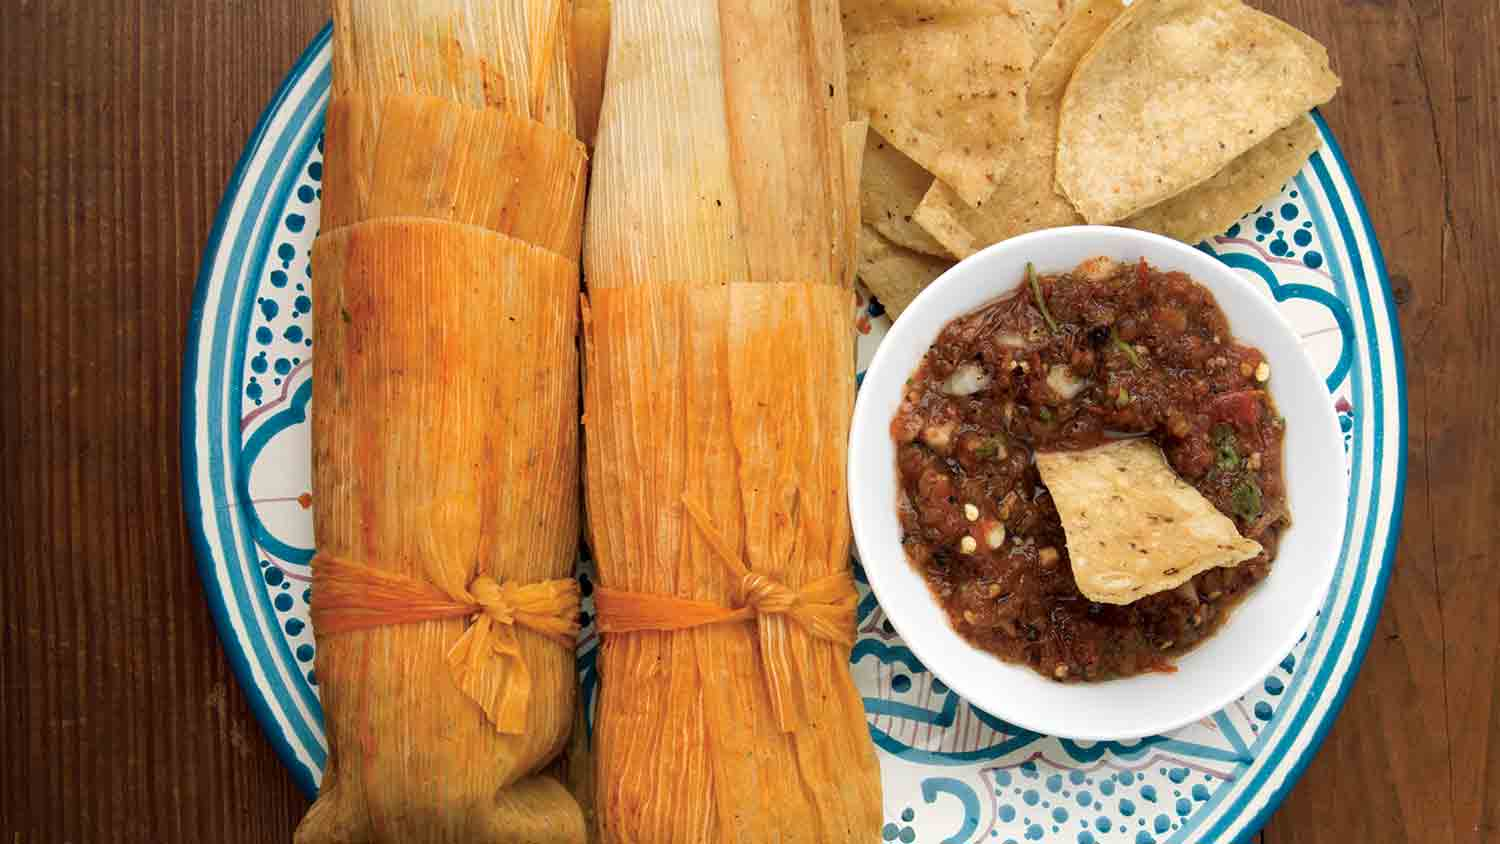 The Tamale Place at the City Market